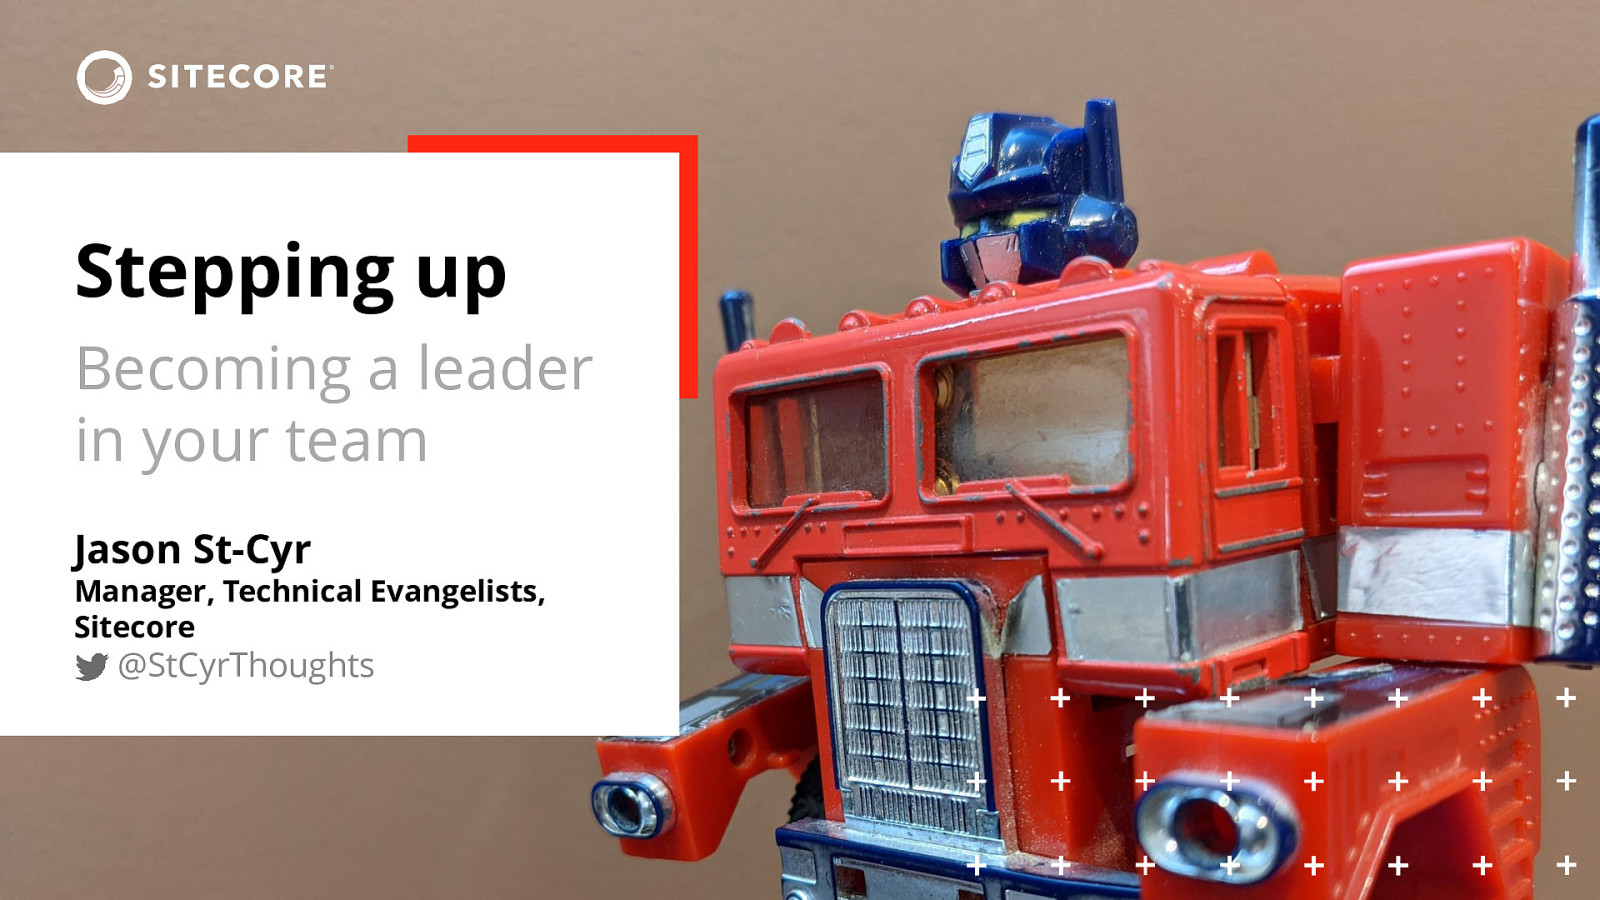 Stepping Up - Becoming a leader in your team